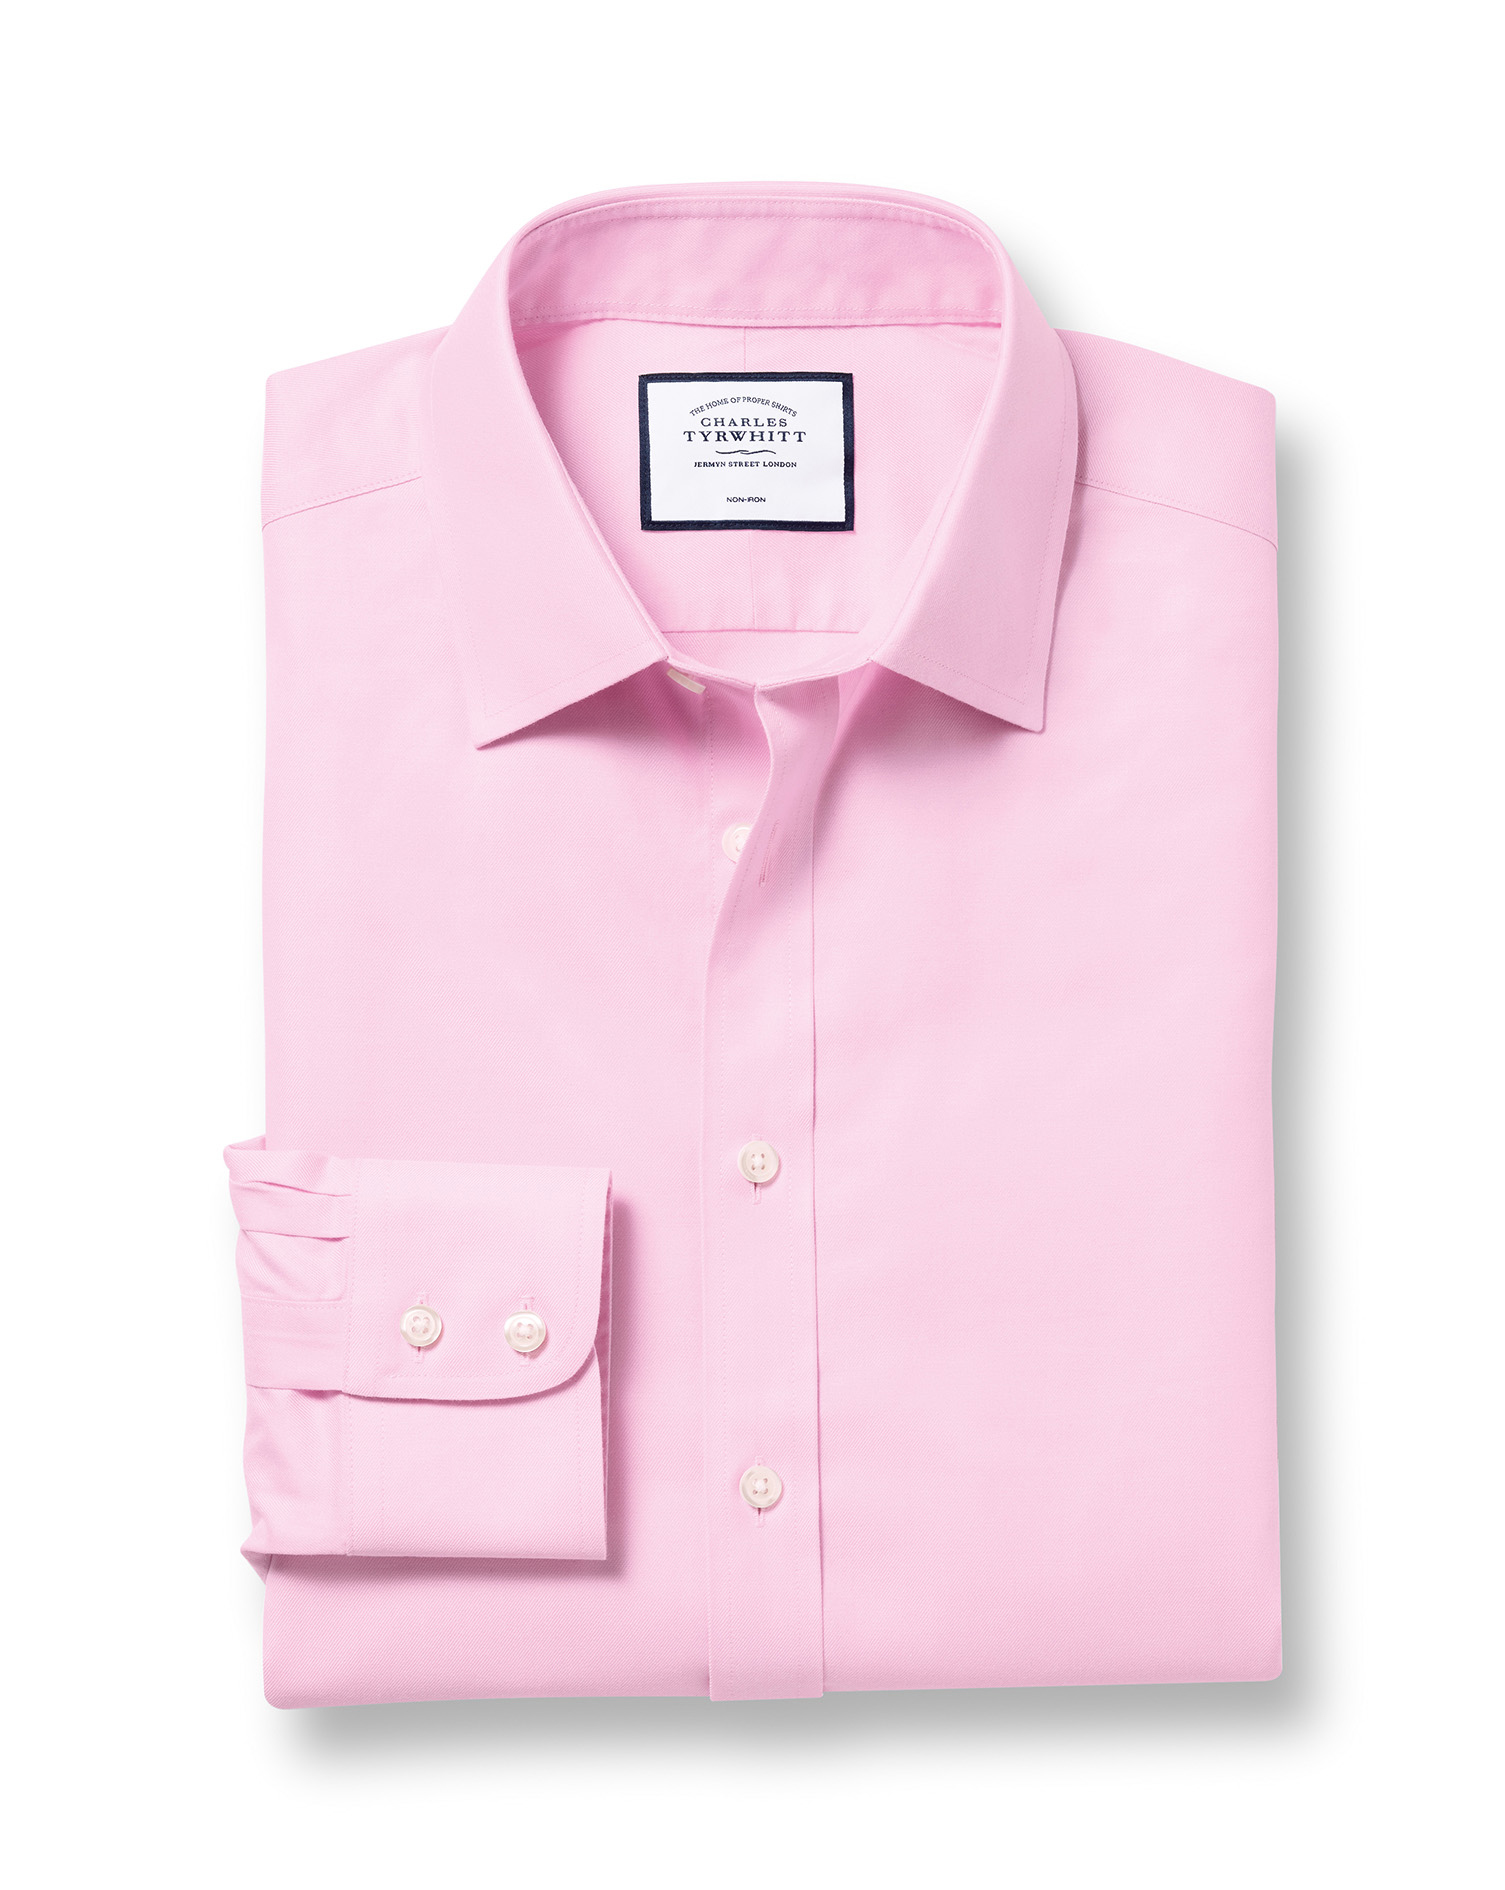 Classic Fit Non-Iron Twill Pink Cotton Formal Shirt Double Cuff Size 15.5/33 by Charles Tyrwhitt